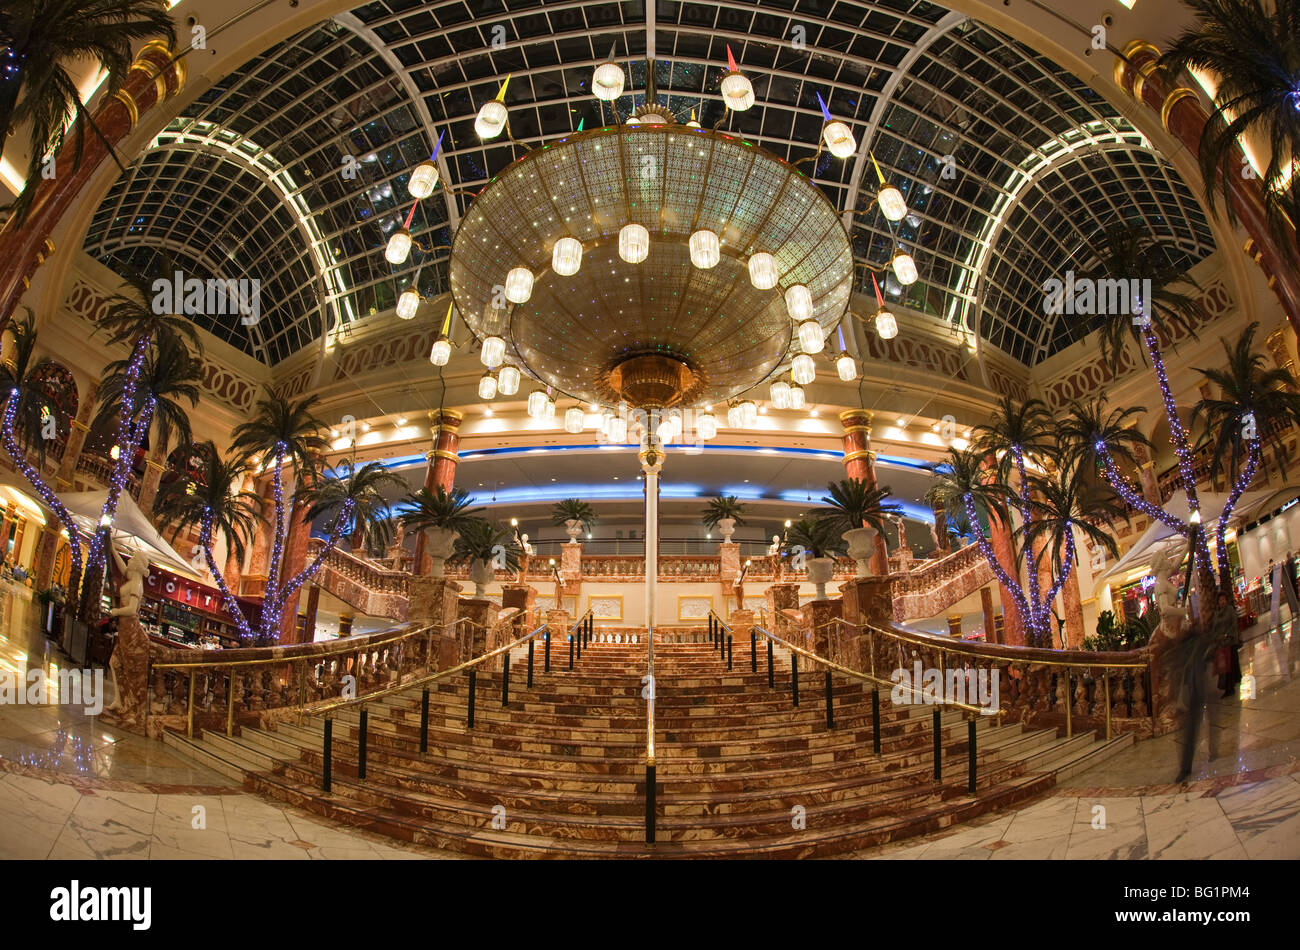 UK, England, Manchester, Trafford Centre shopping mall, Orient Great Hall decorated for Christmas wide angle view Stock Photo